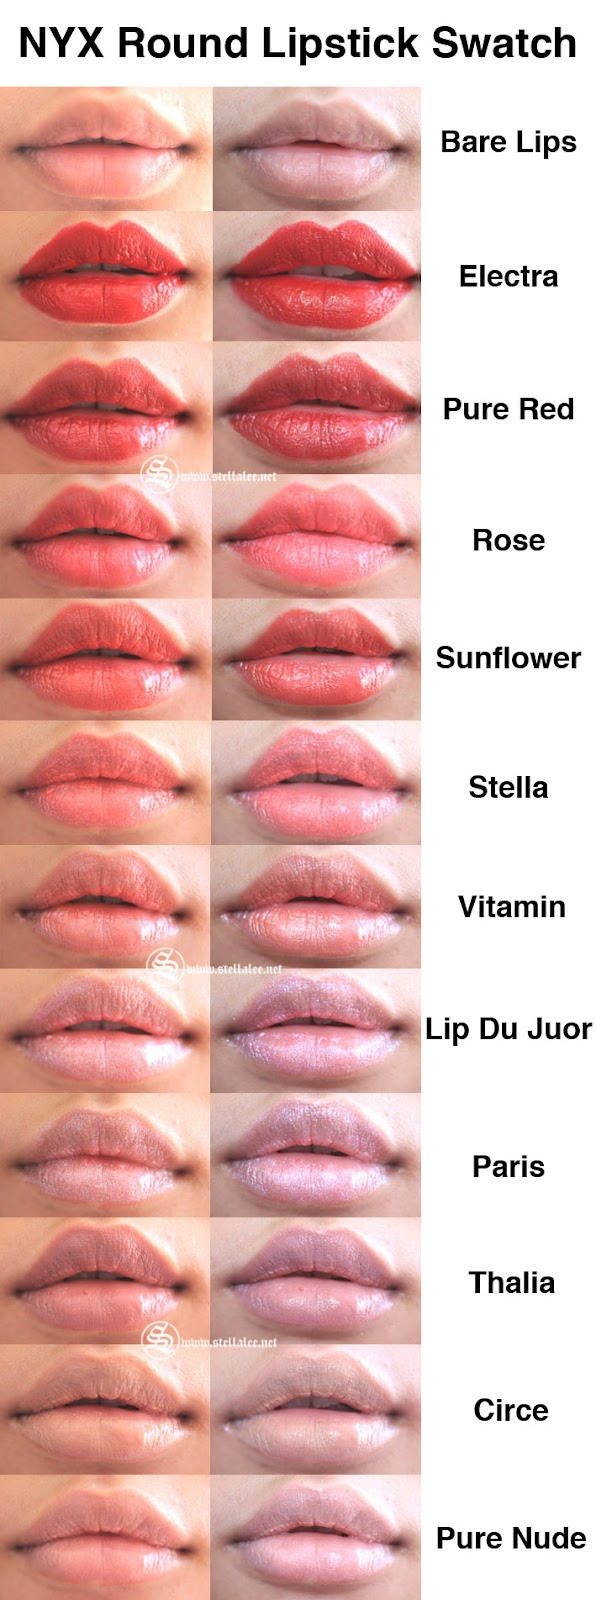 nyx round lipstick review swatches stella lee